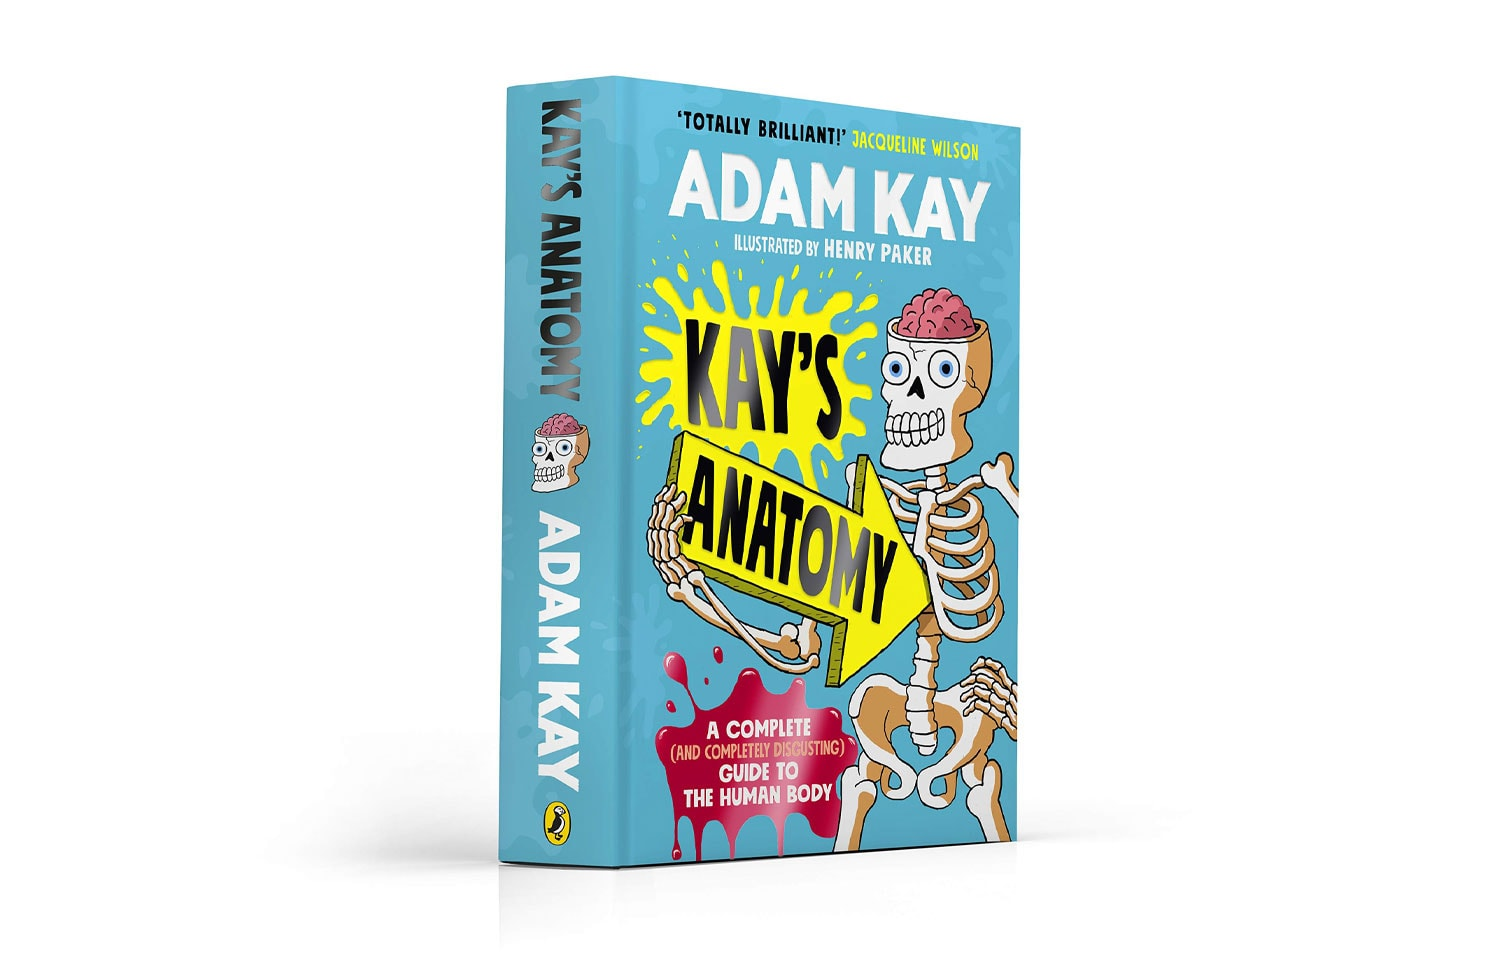 KAY'S ANATOMY ILLUSTRATED BY HENRY PAKER OUT NOW